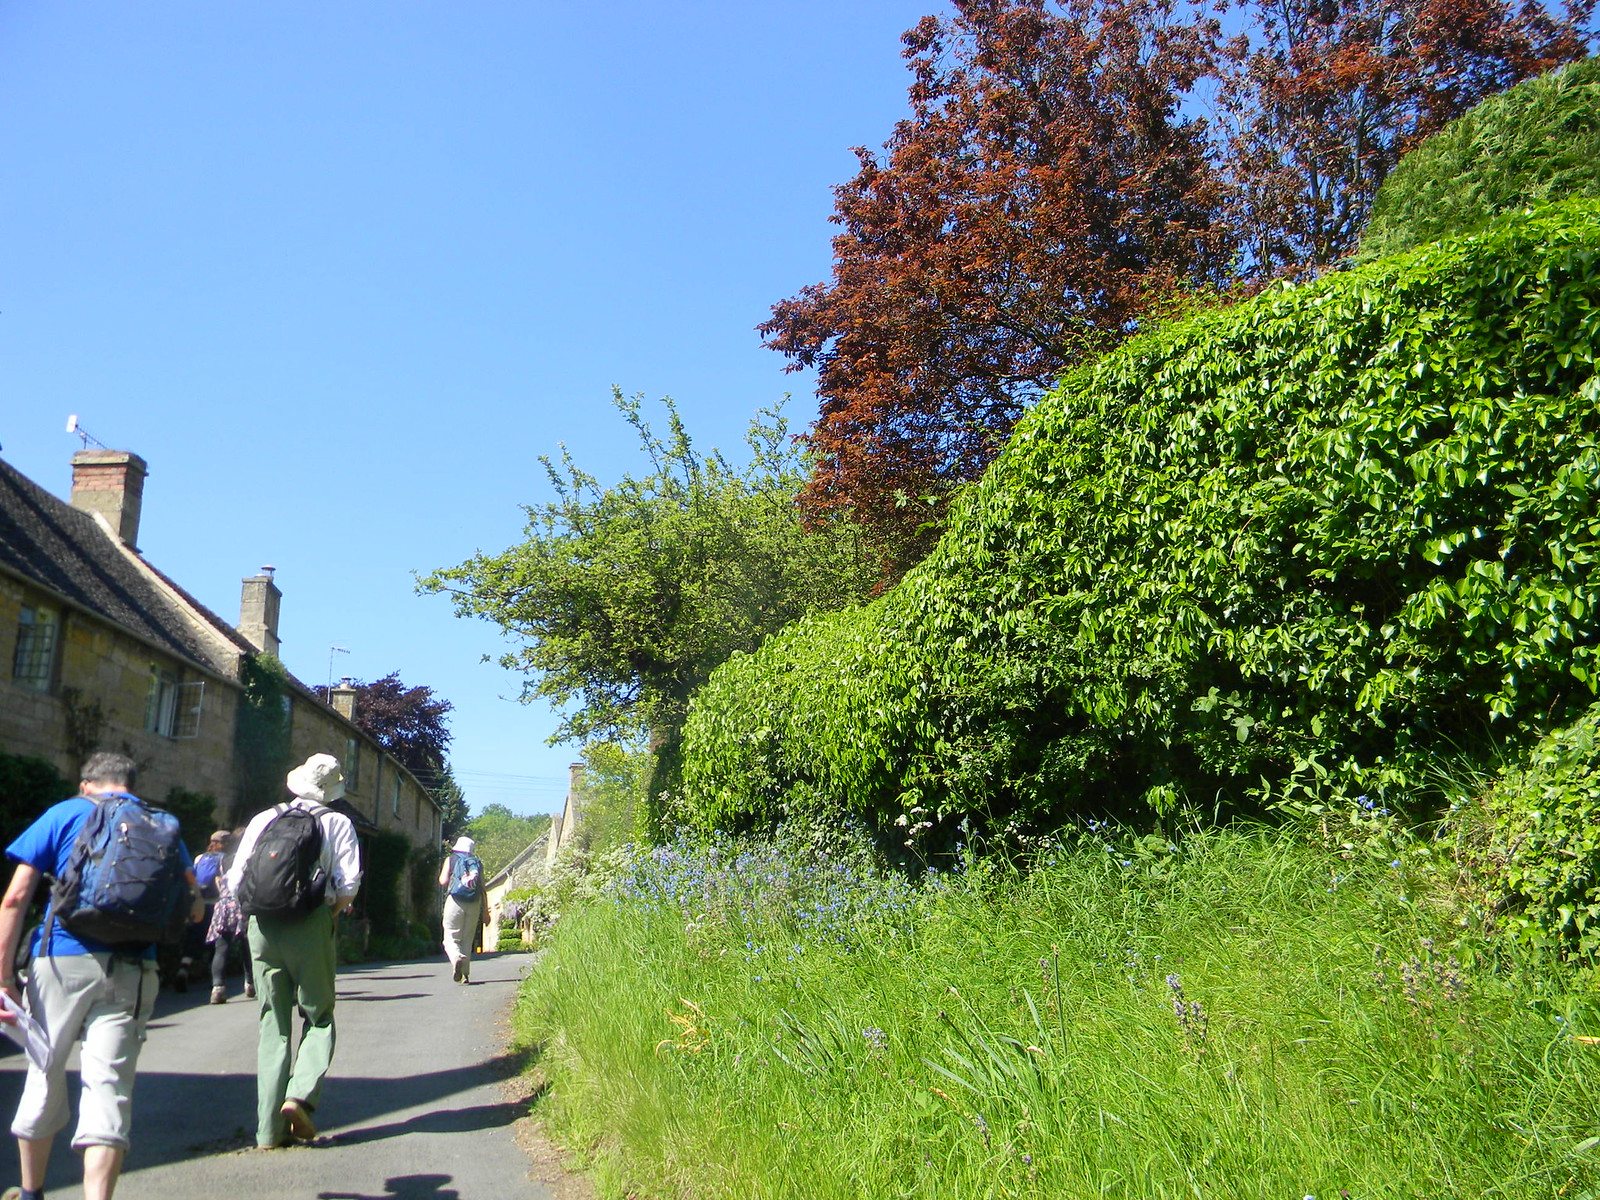 Diverting to Chipping Camden Going through Broad Camden Moreton-in-Marsh Circular